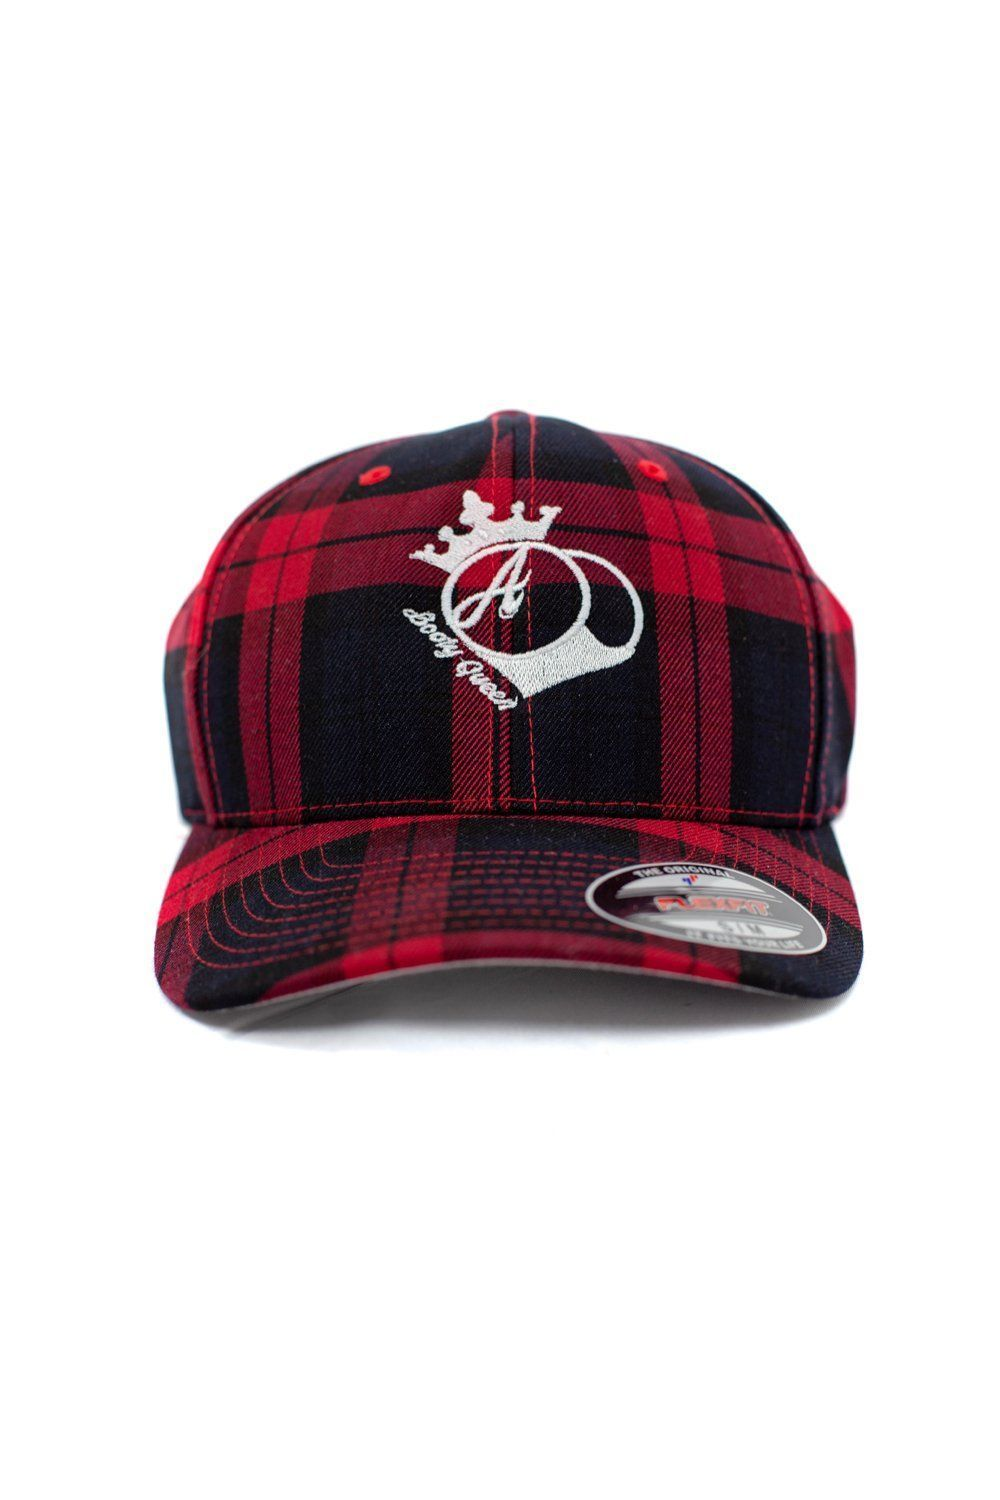 Hats bootyqueen plaid fitted hat fitted hats womens